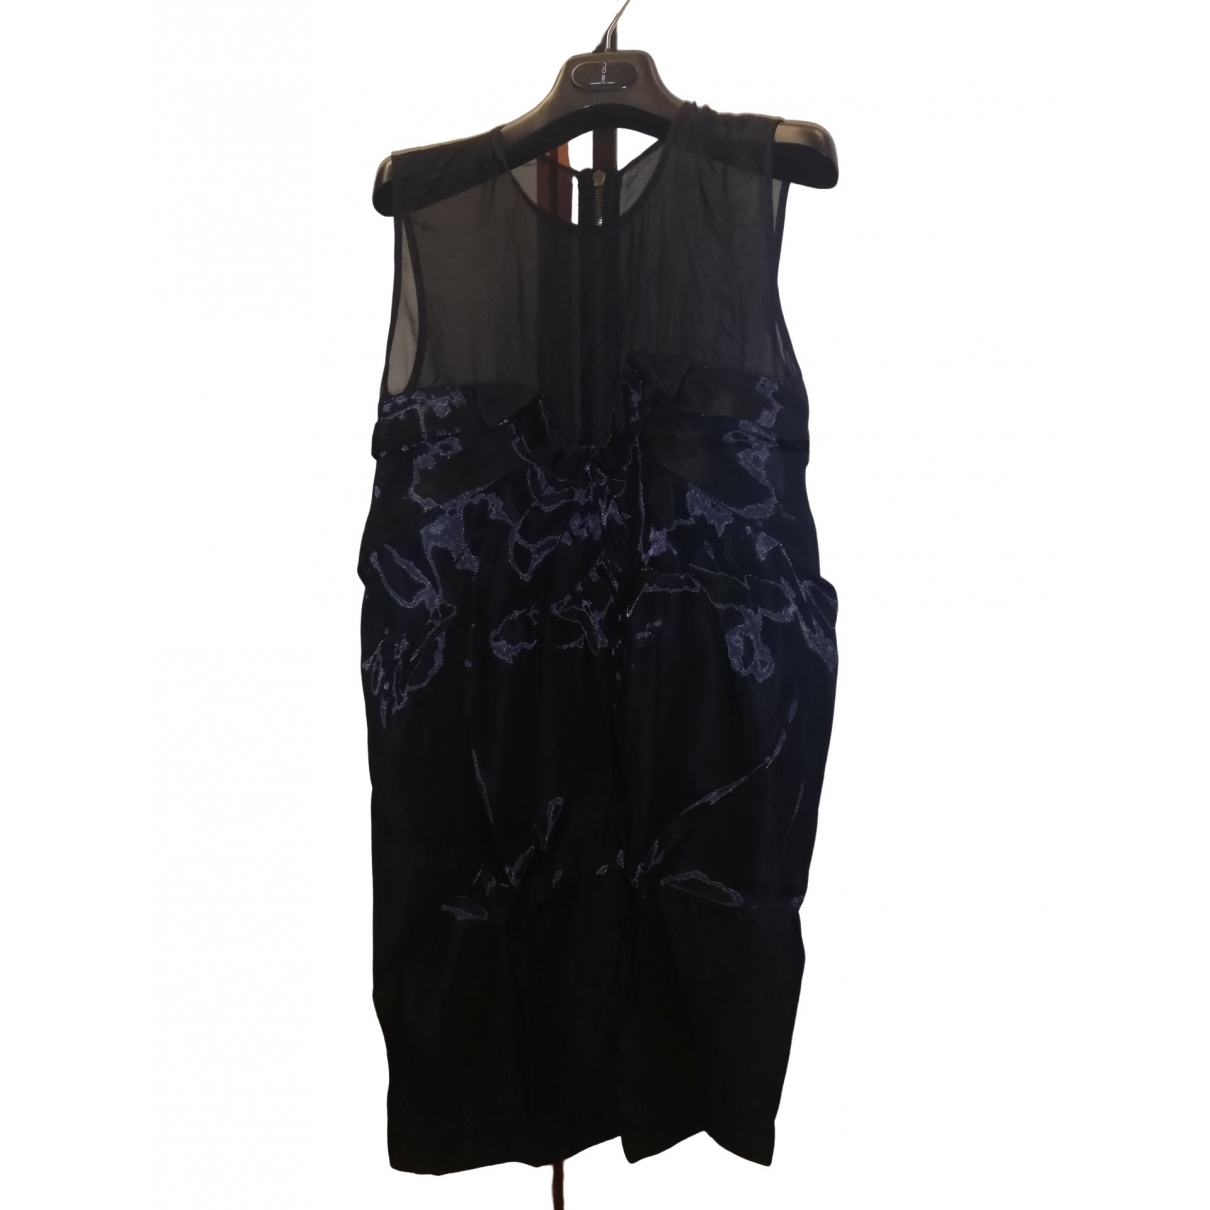 Stella Mccartney \N Black dress for Women 38 FR